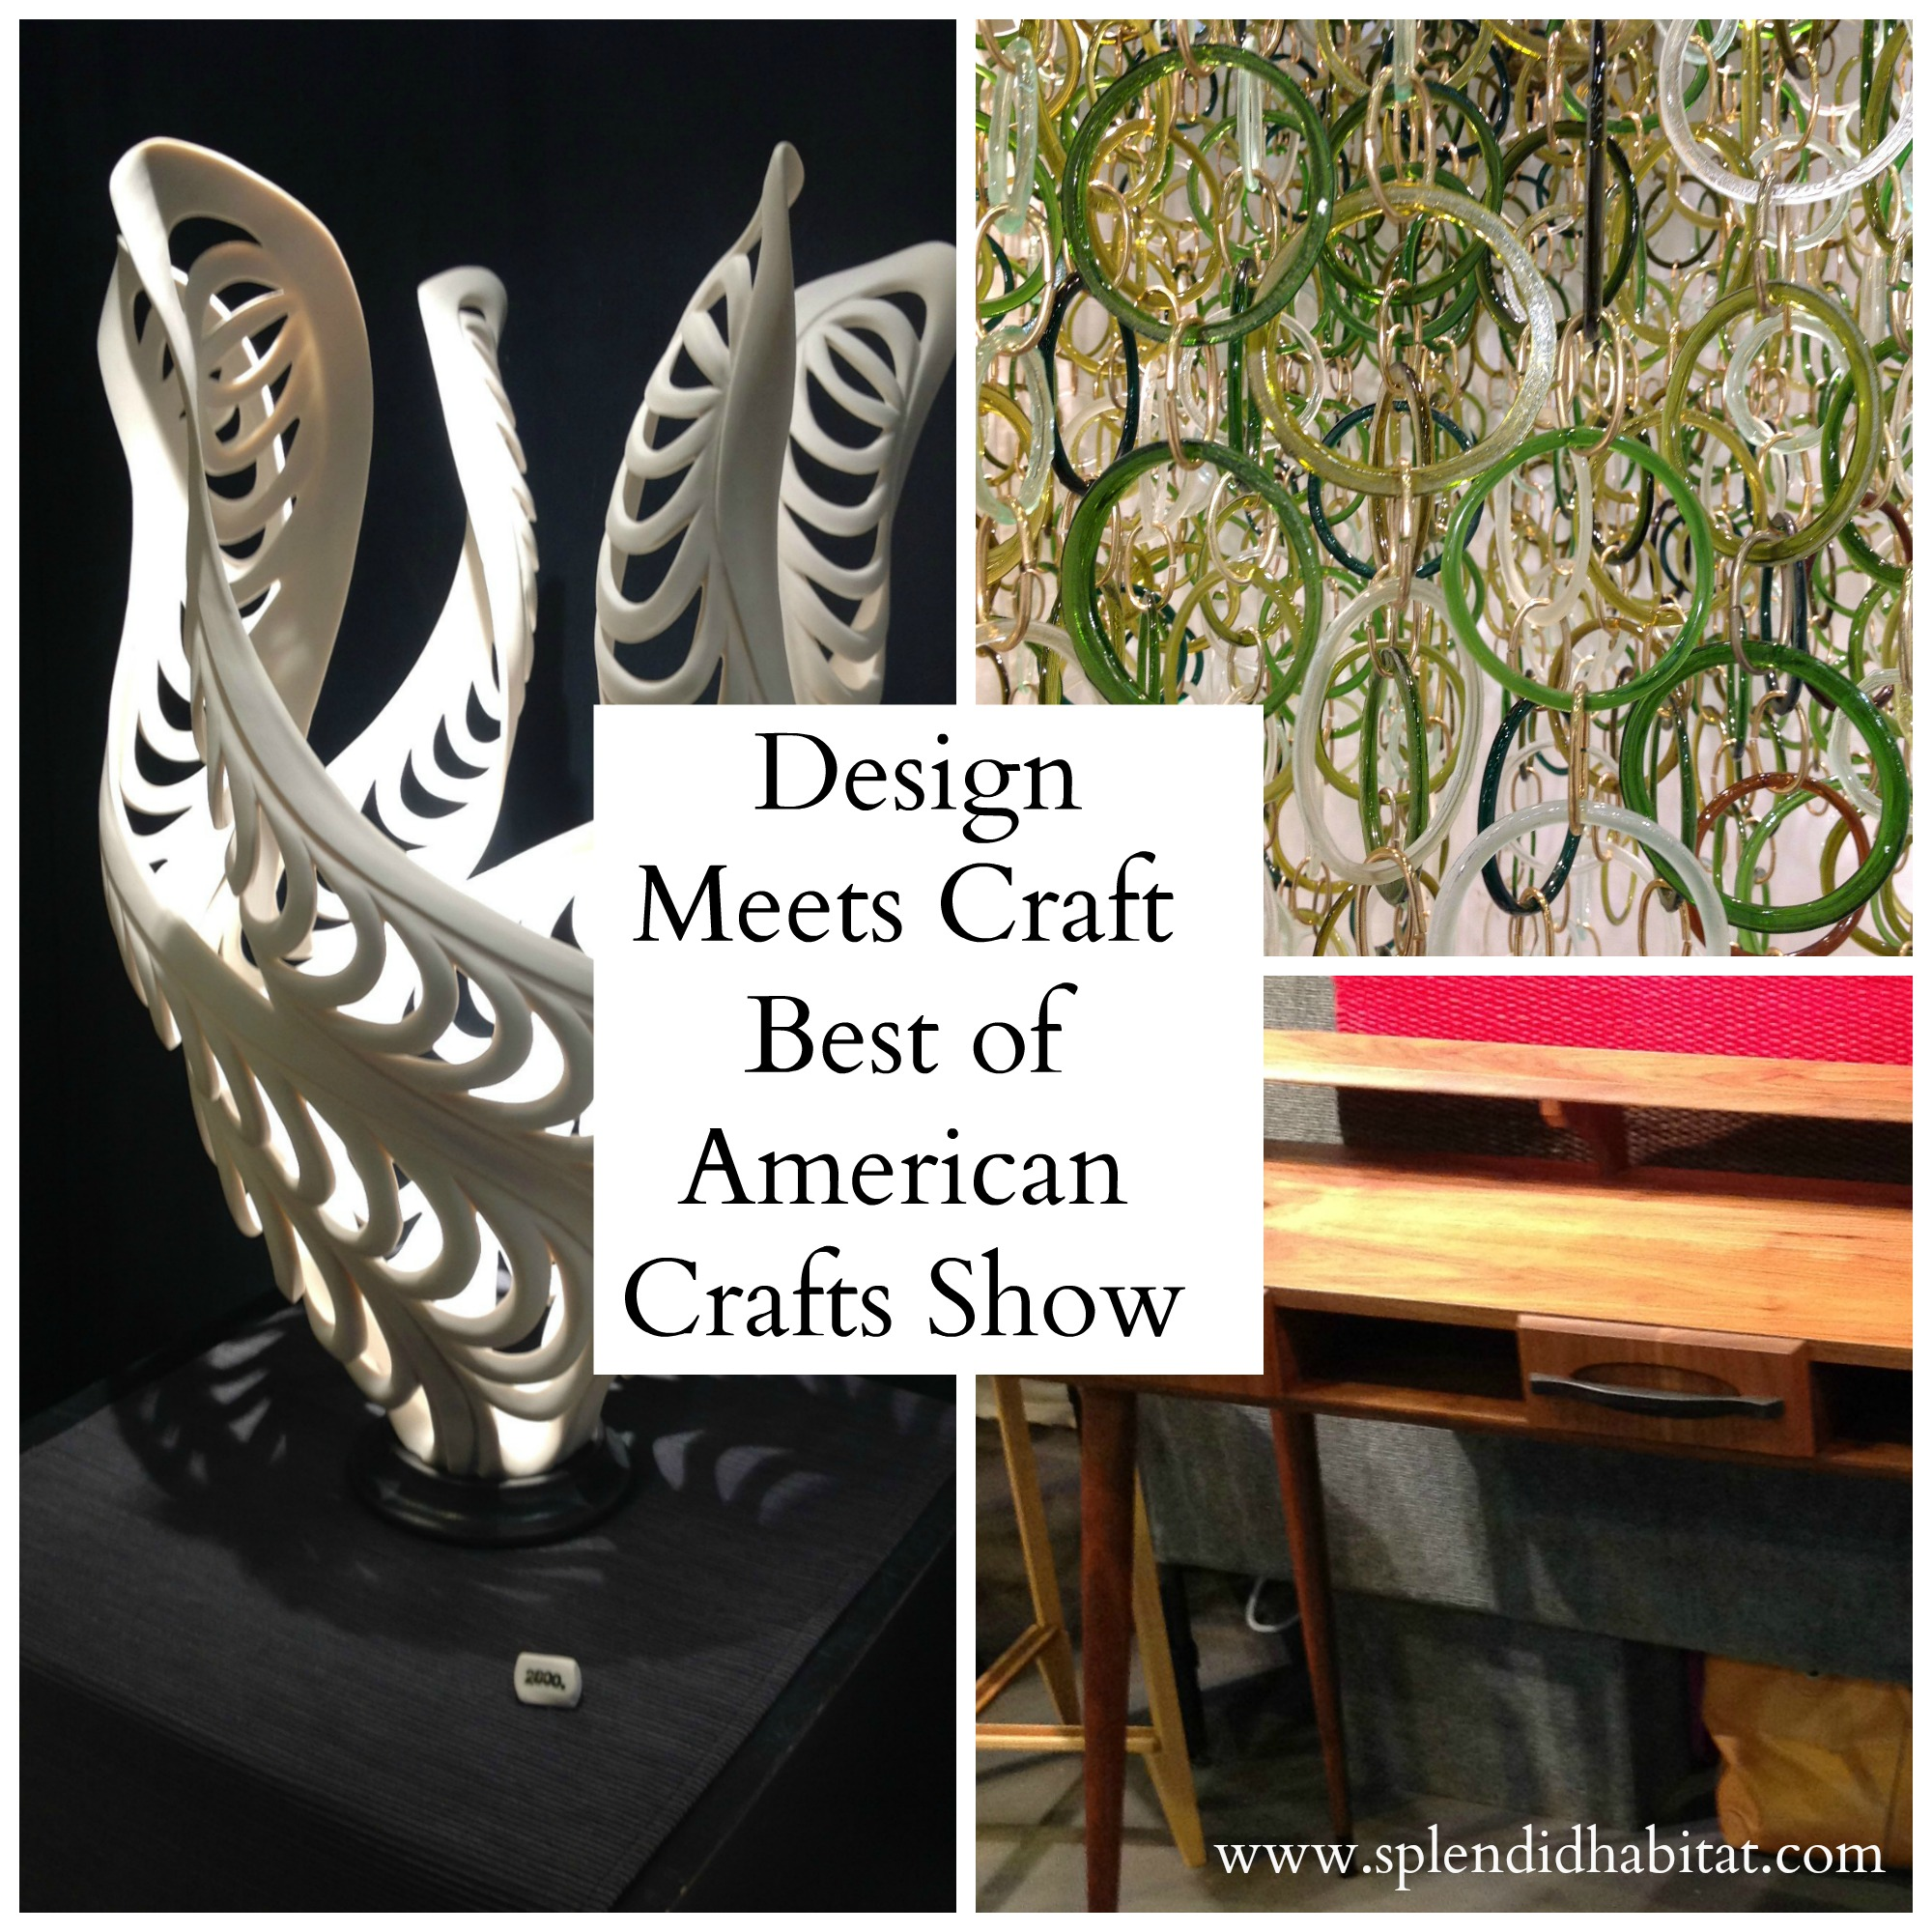 Design Meets Craft